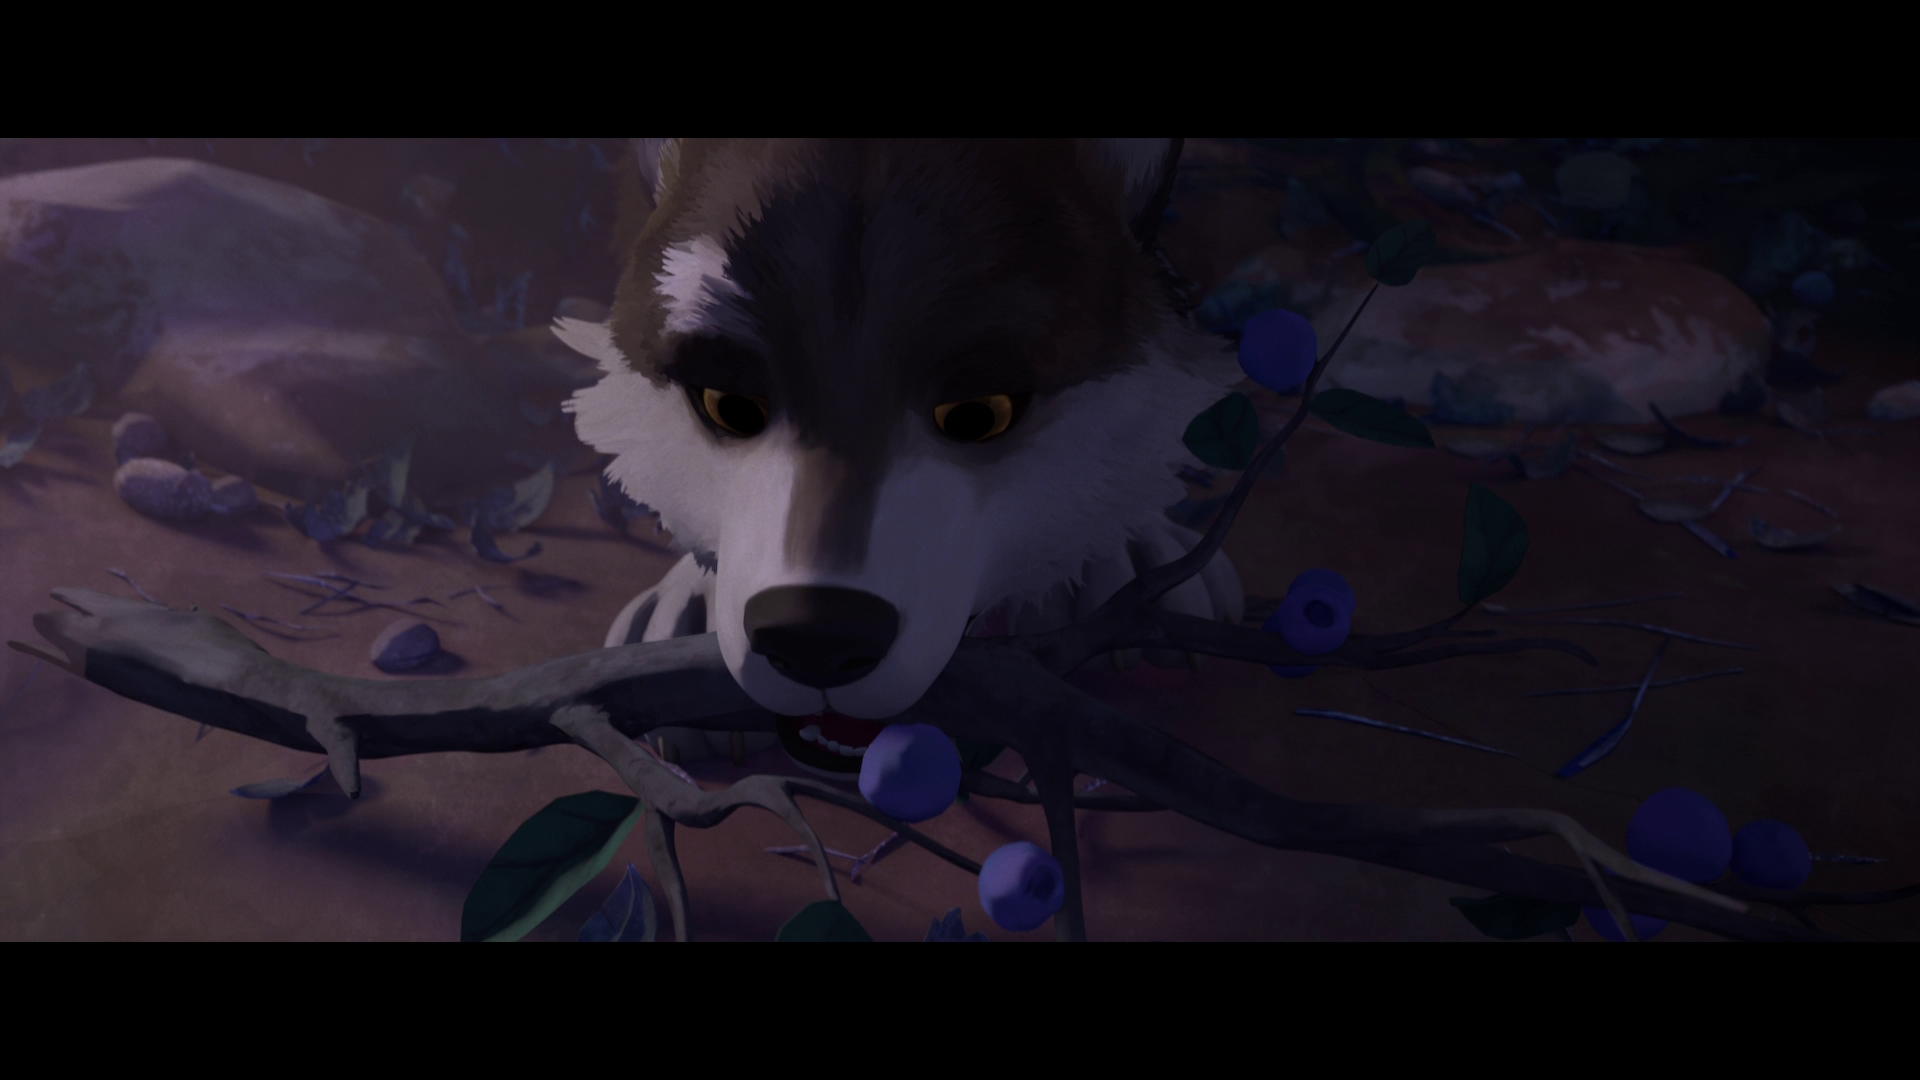 Download White Fang Movie dual dubbed audio scene 3